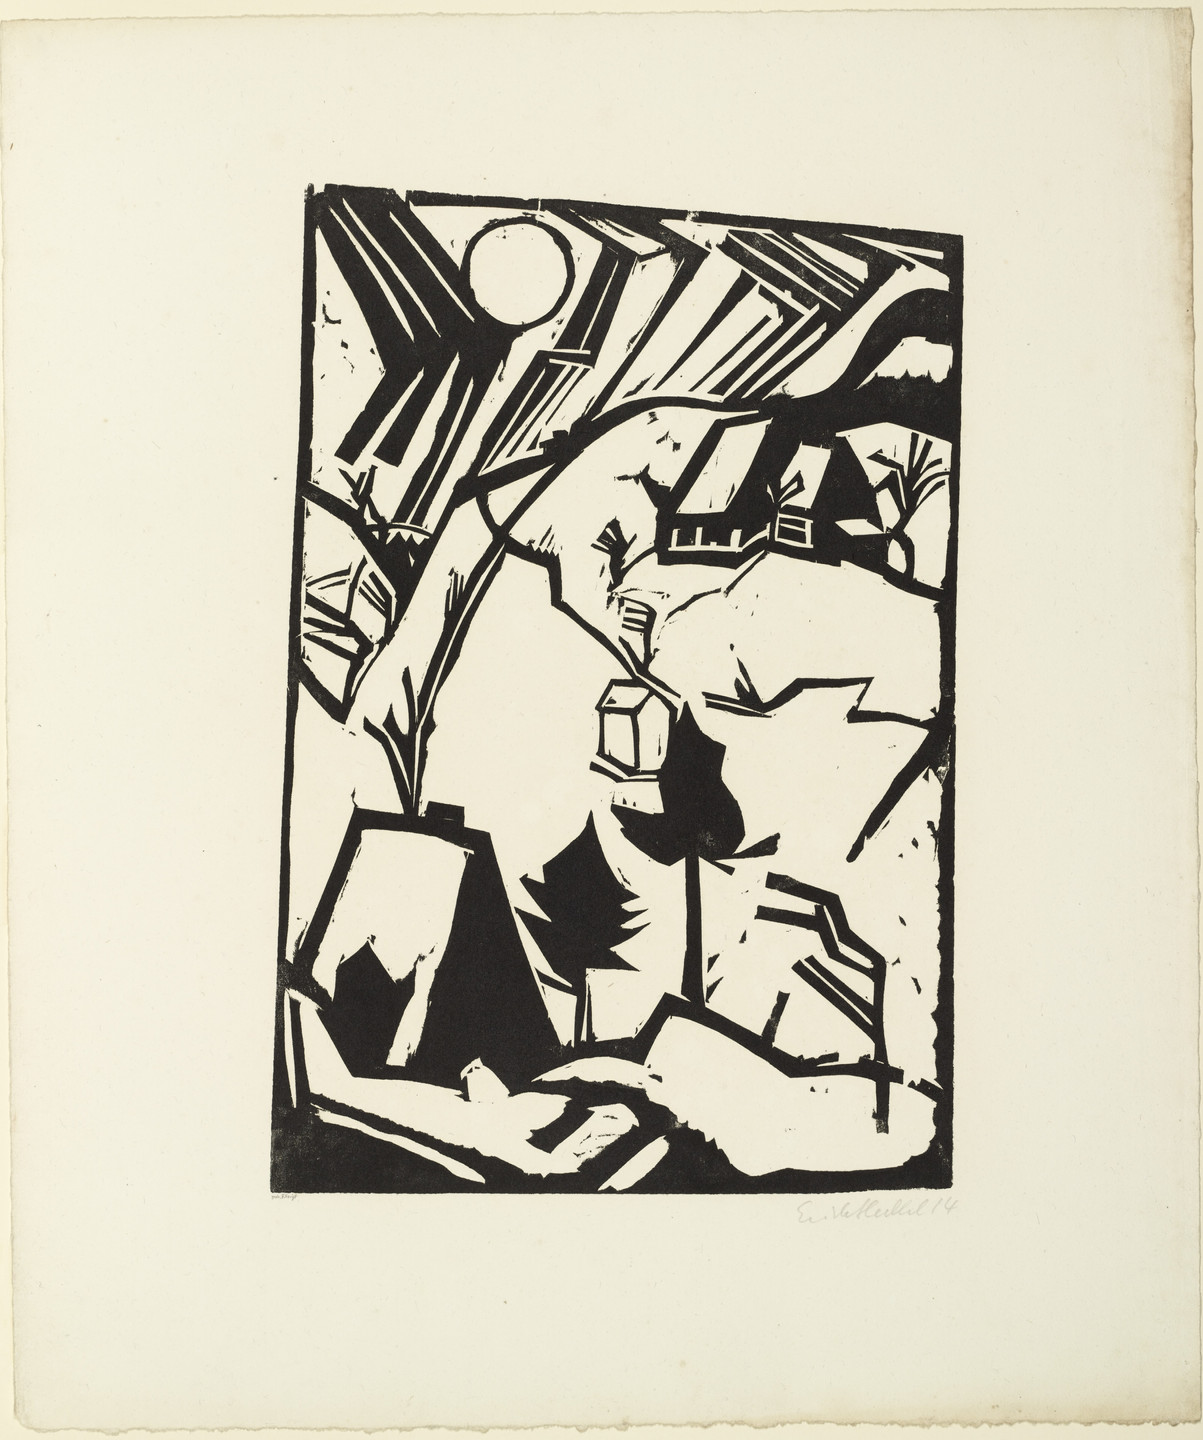 Erich Heckel. Driving Snow (Schneetreiben) from the portfolio Eleven Woodcuts, 1912-1919 (Elf Holzschnitte, 1912-1919). 1914 (published 1921)